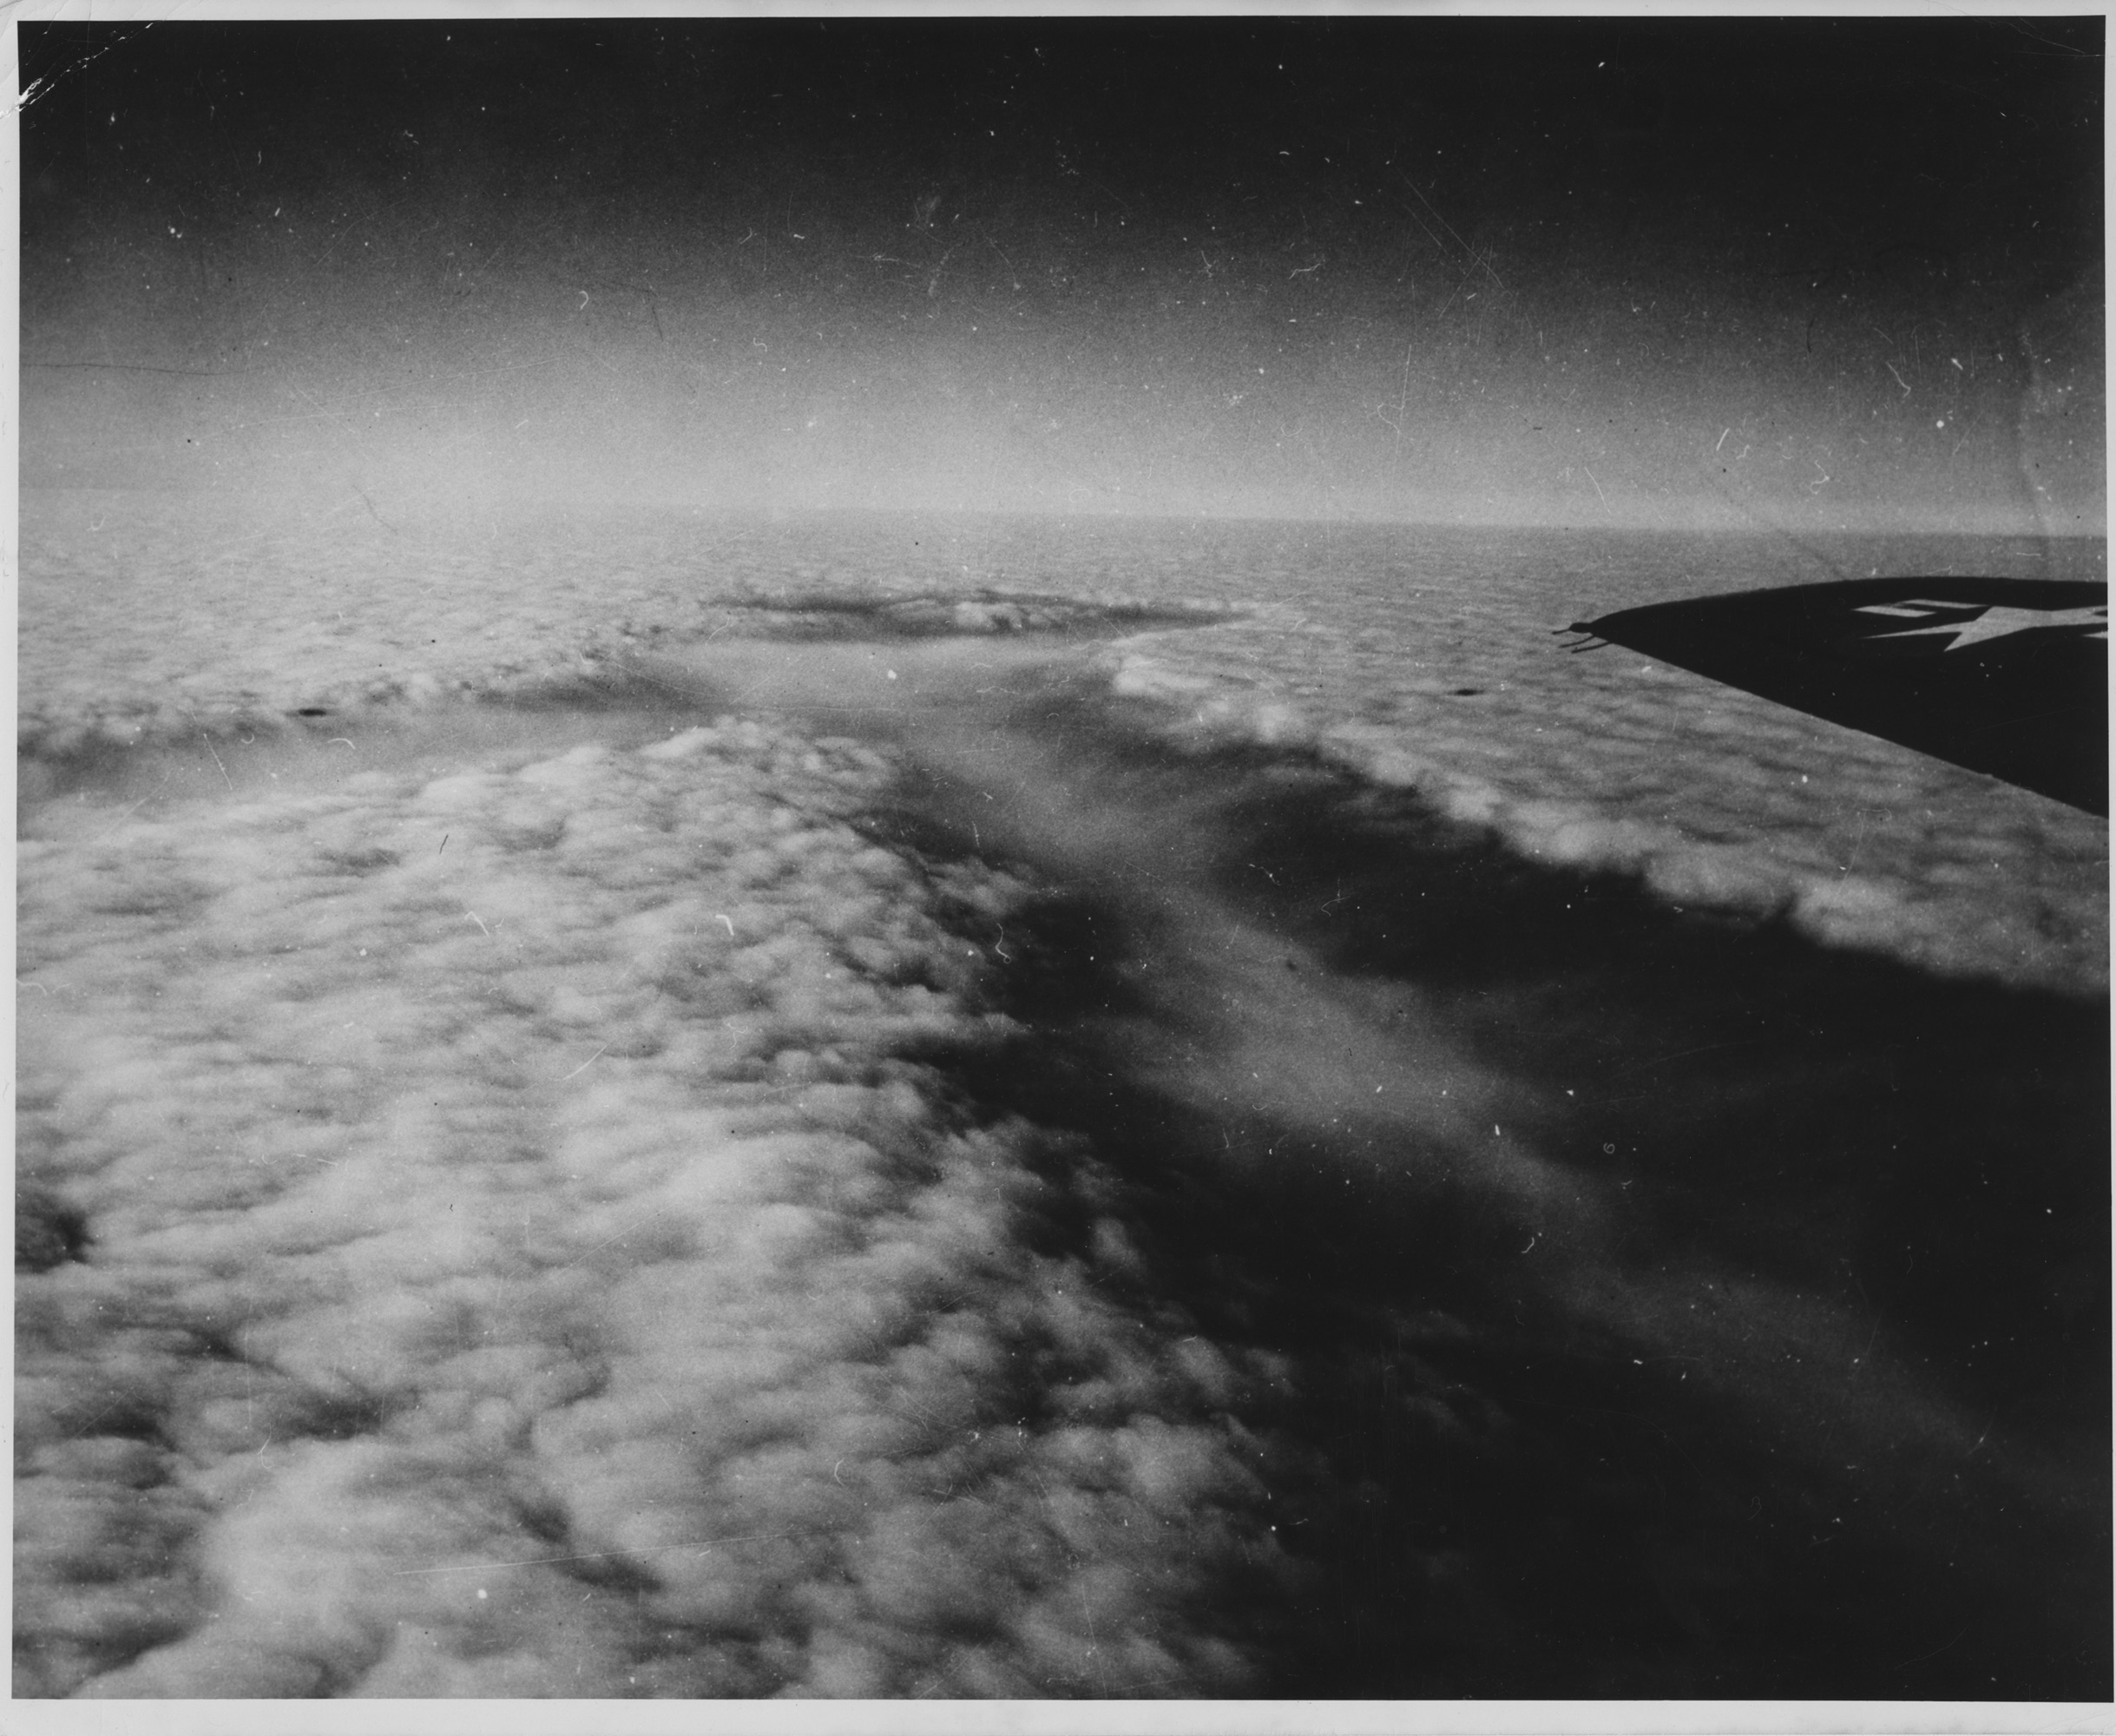 Kurt's brother Bernard Vonnegut advised the military's cloud-seeding initiative, Project Cirrus. Here, a Project Cirrus plane seeds a cloud with dry ice, creating a dramatic trench in the cloud. Photo by U.S. Army Signal Corps